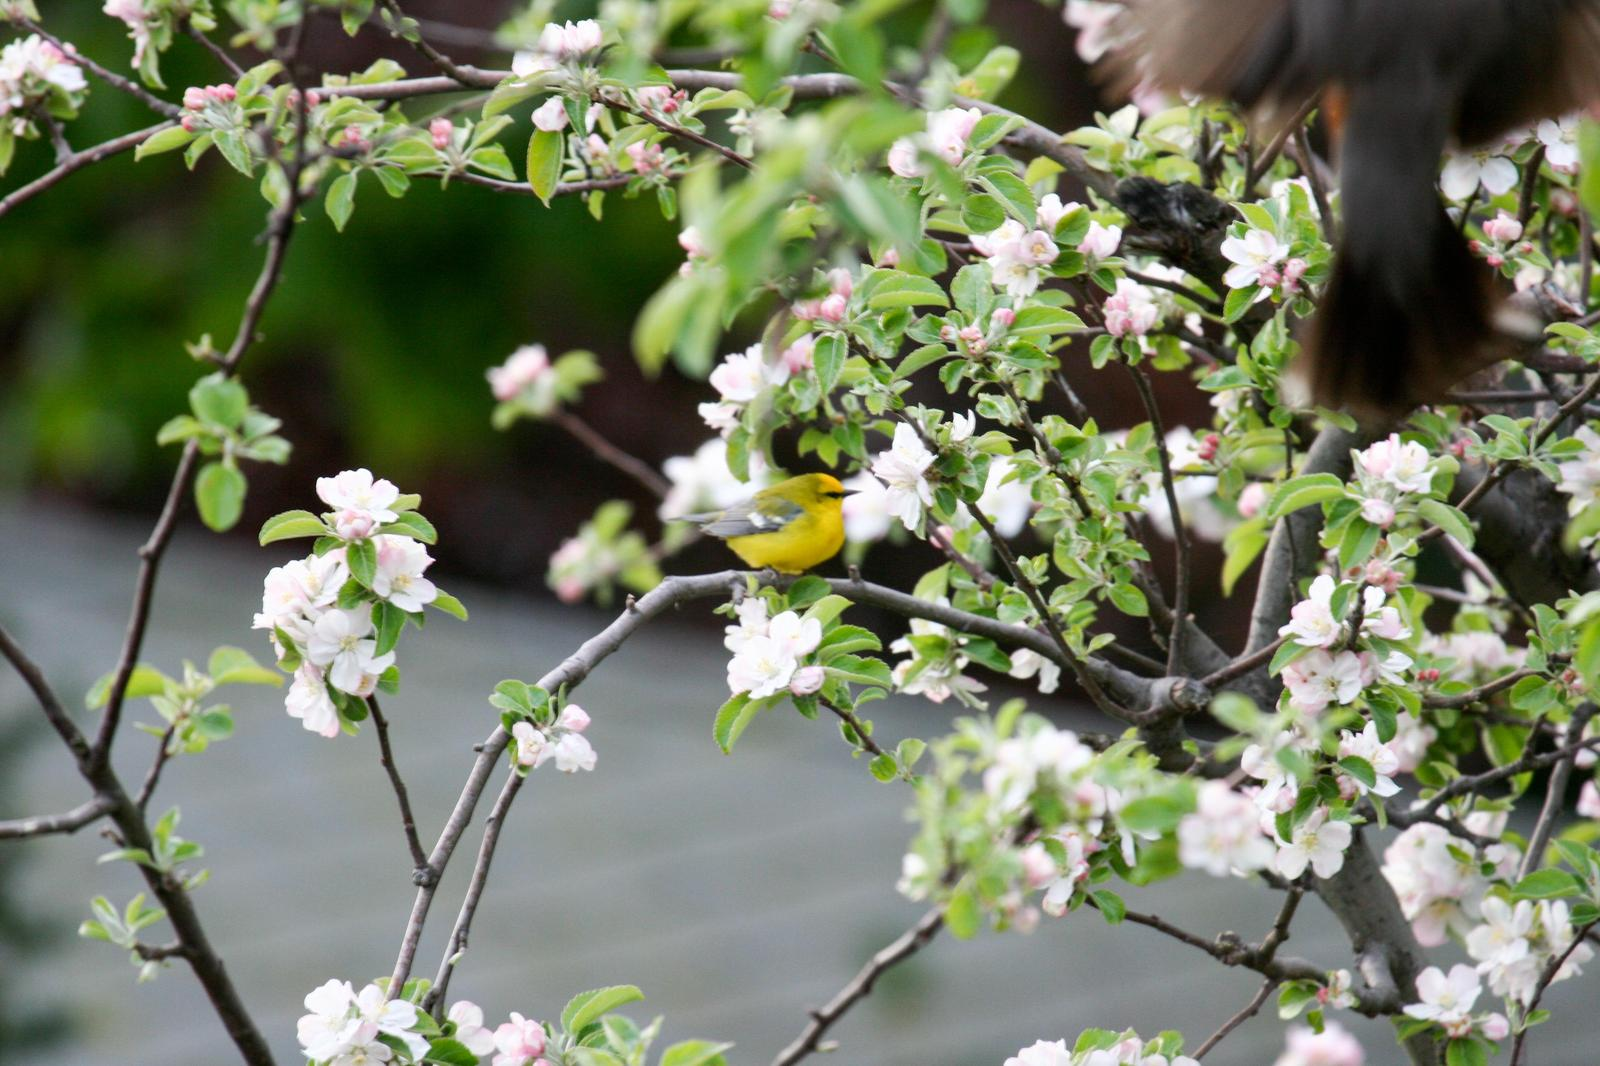 Blue-winged Warbler Photo by Roseanne CALECA